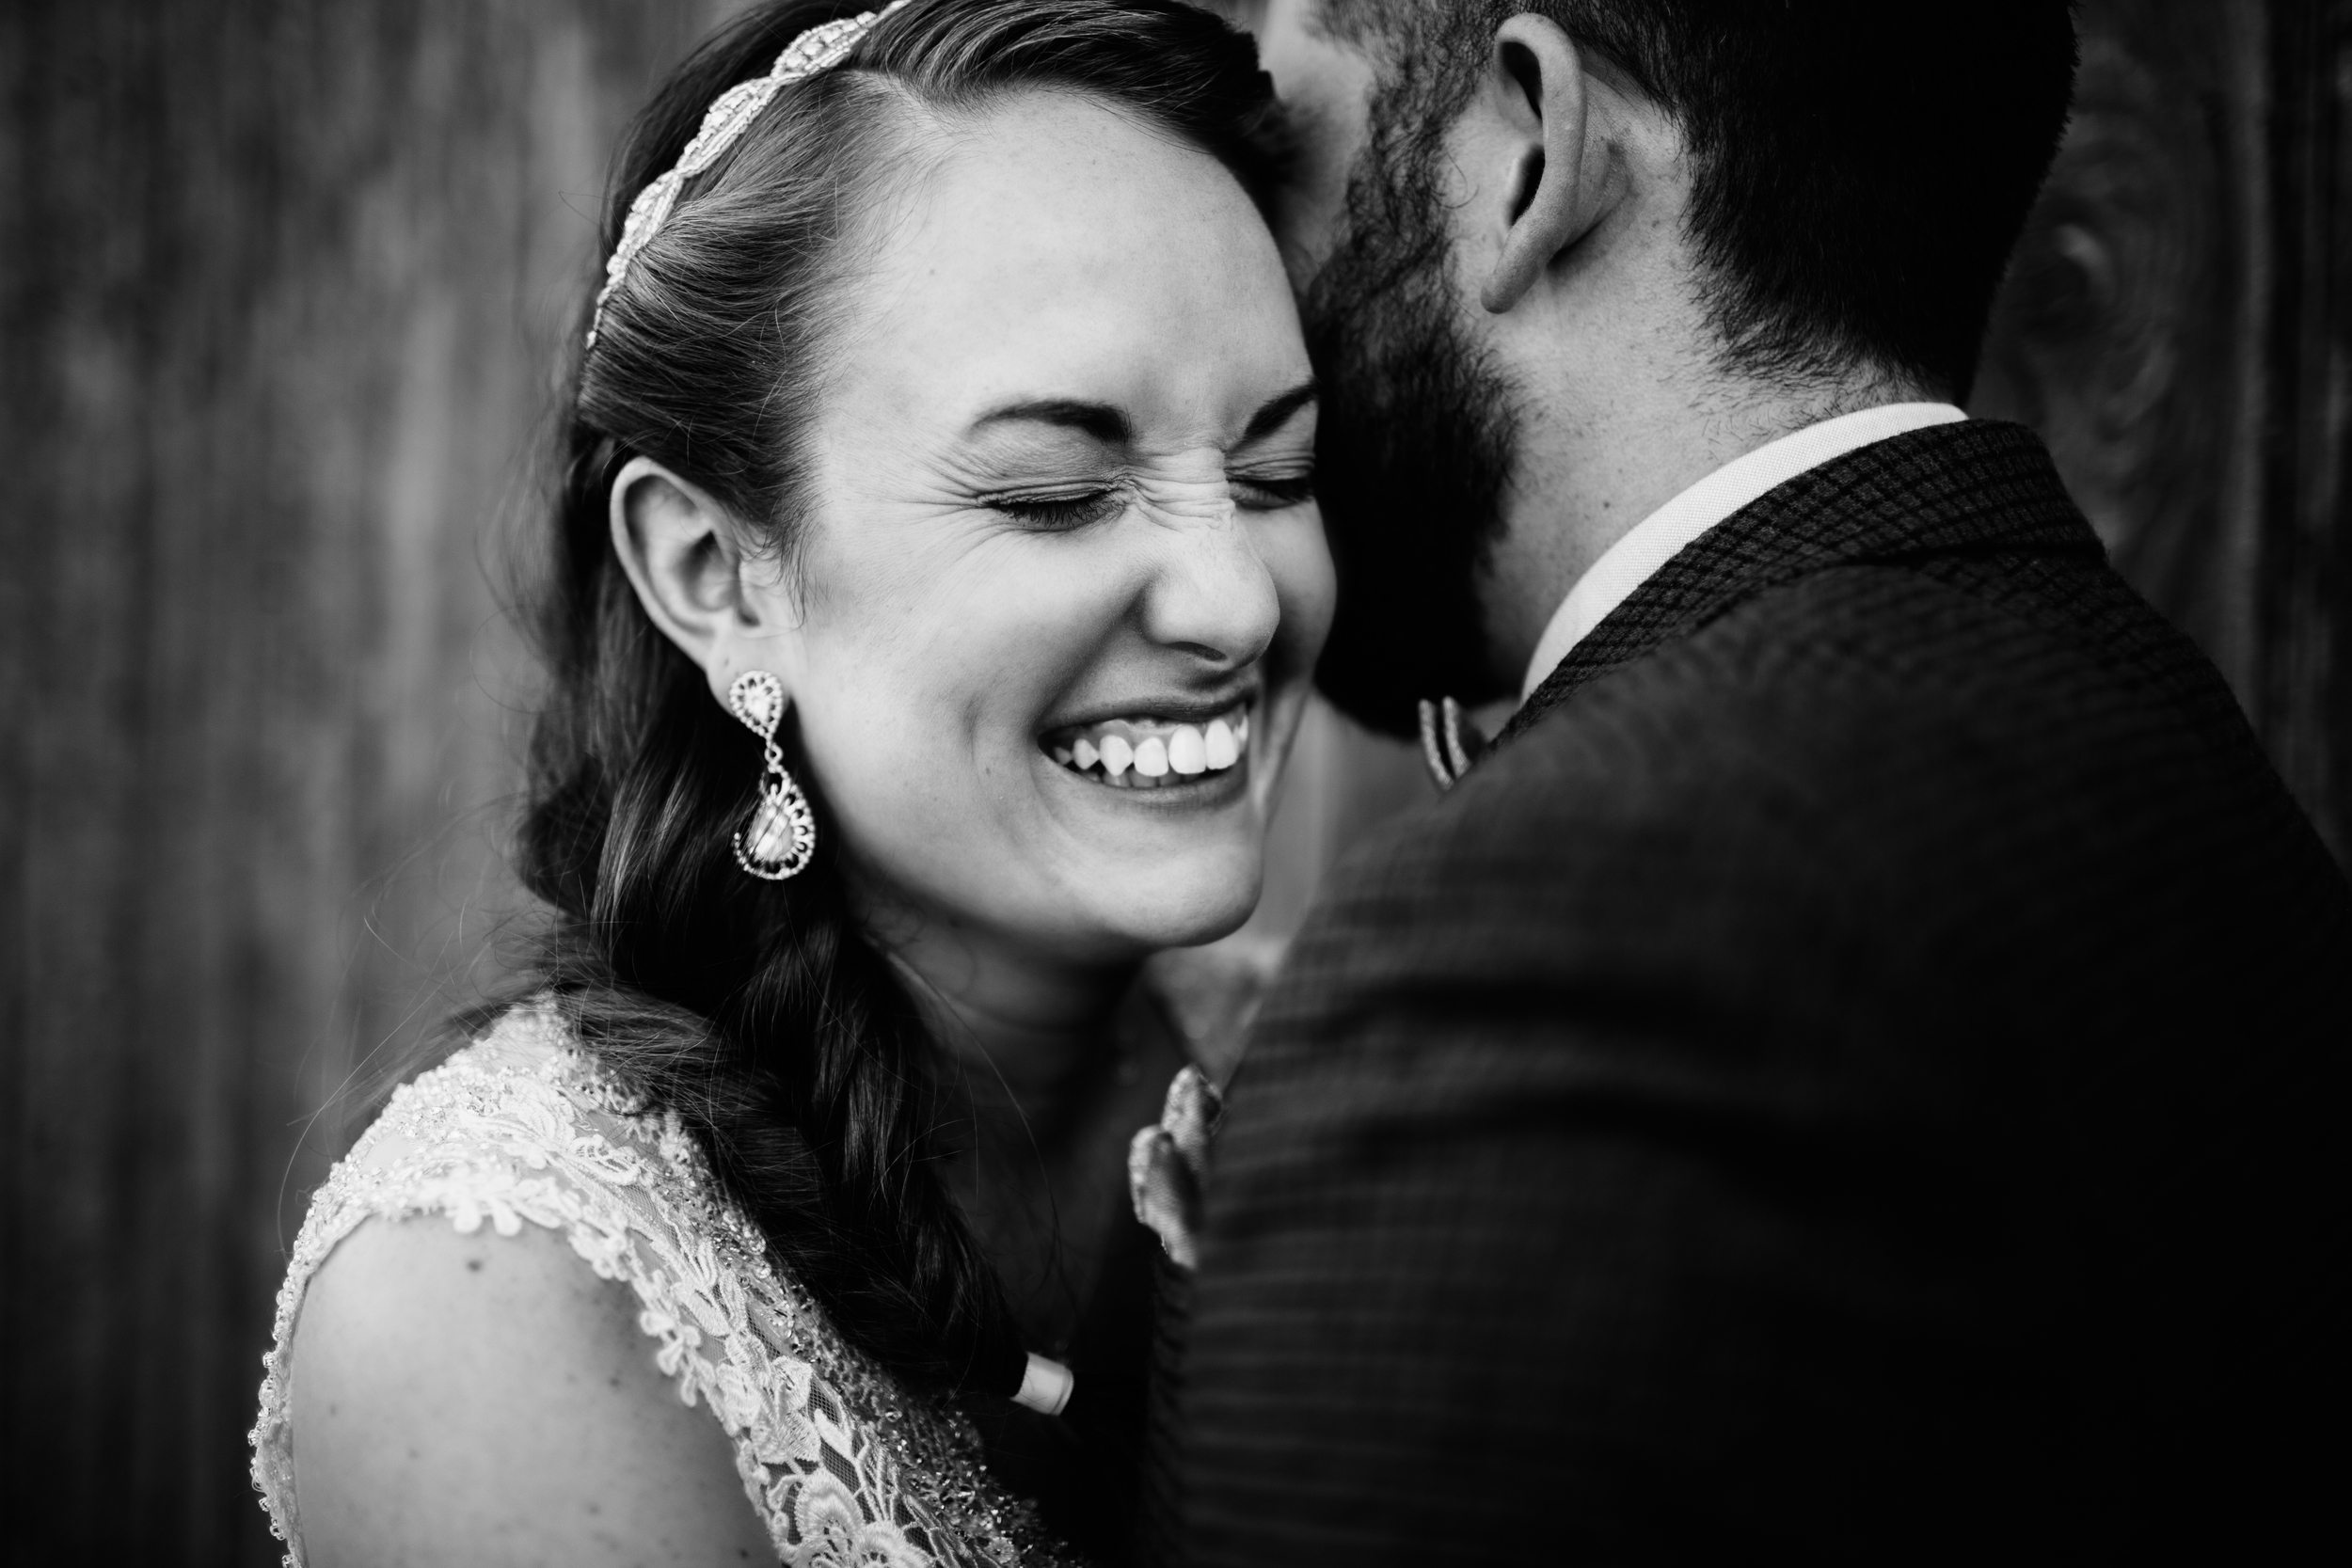 KELLIandBRADweddingJUNE2015 - portraits (54 of 142).jpg